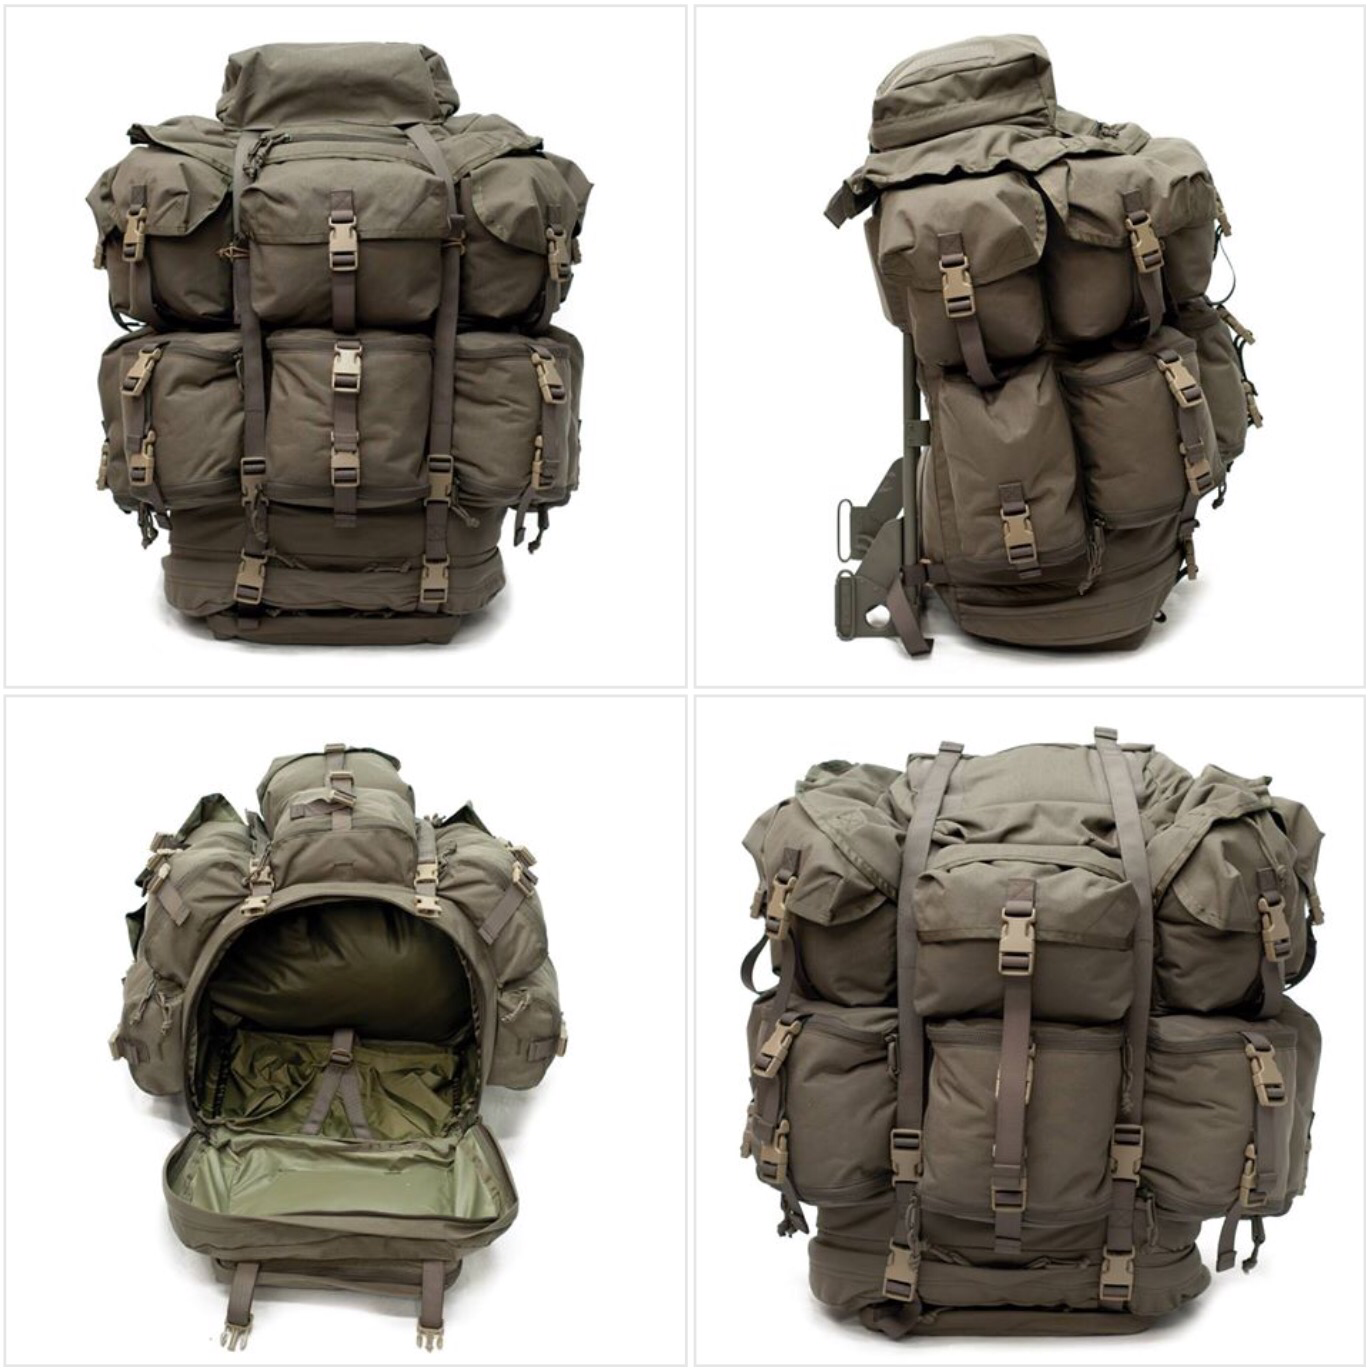 Platatac Mac Alice Pack Soldier Systems Daily Zombie Survival Gear Survival Military Gear